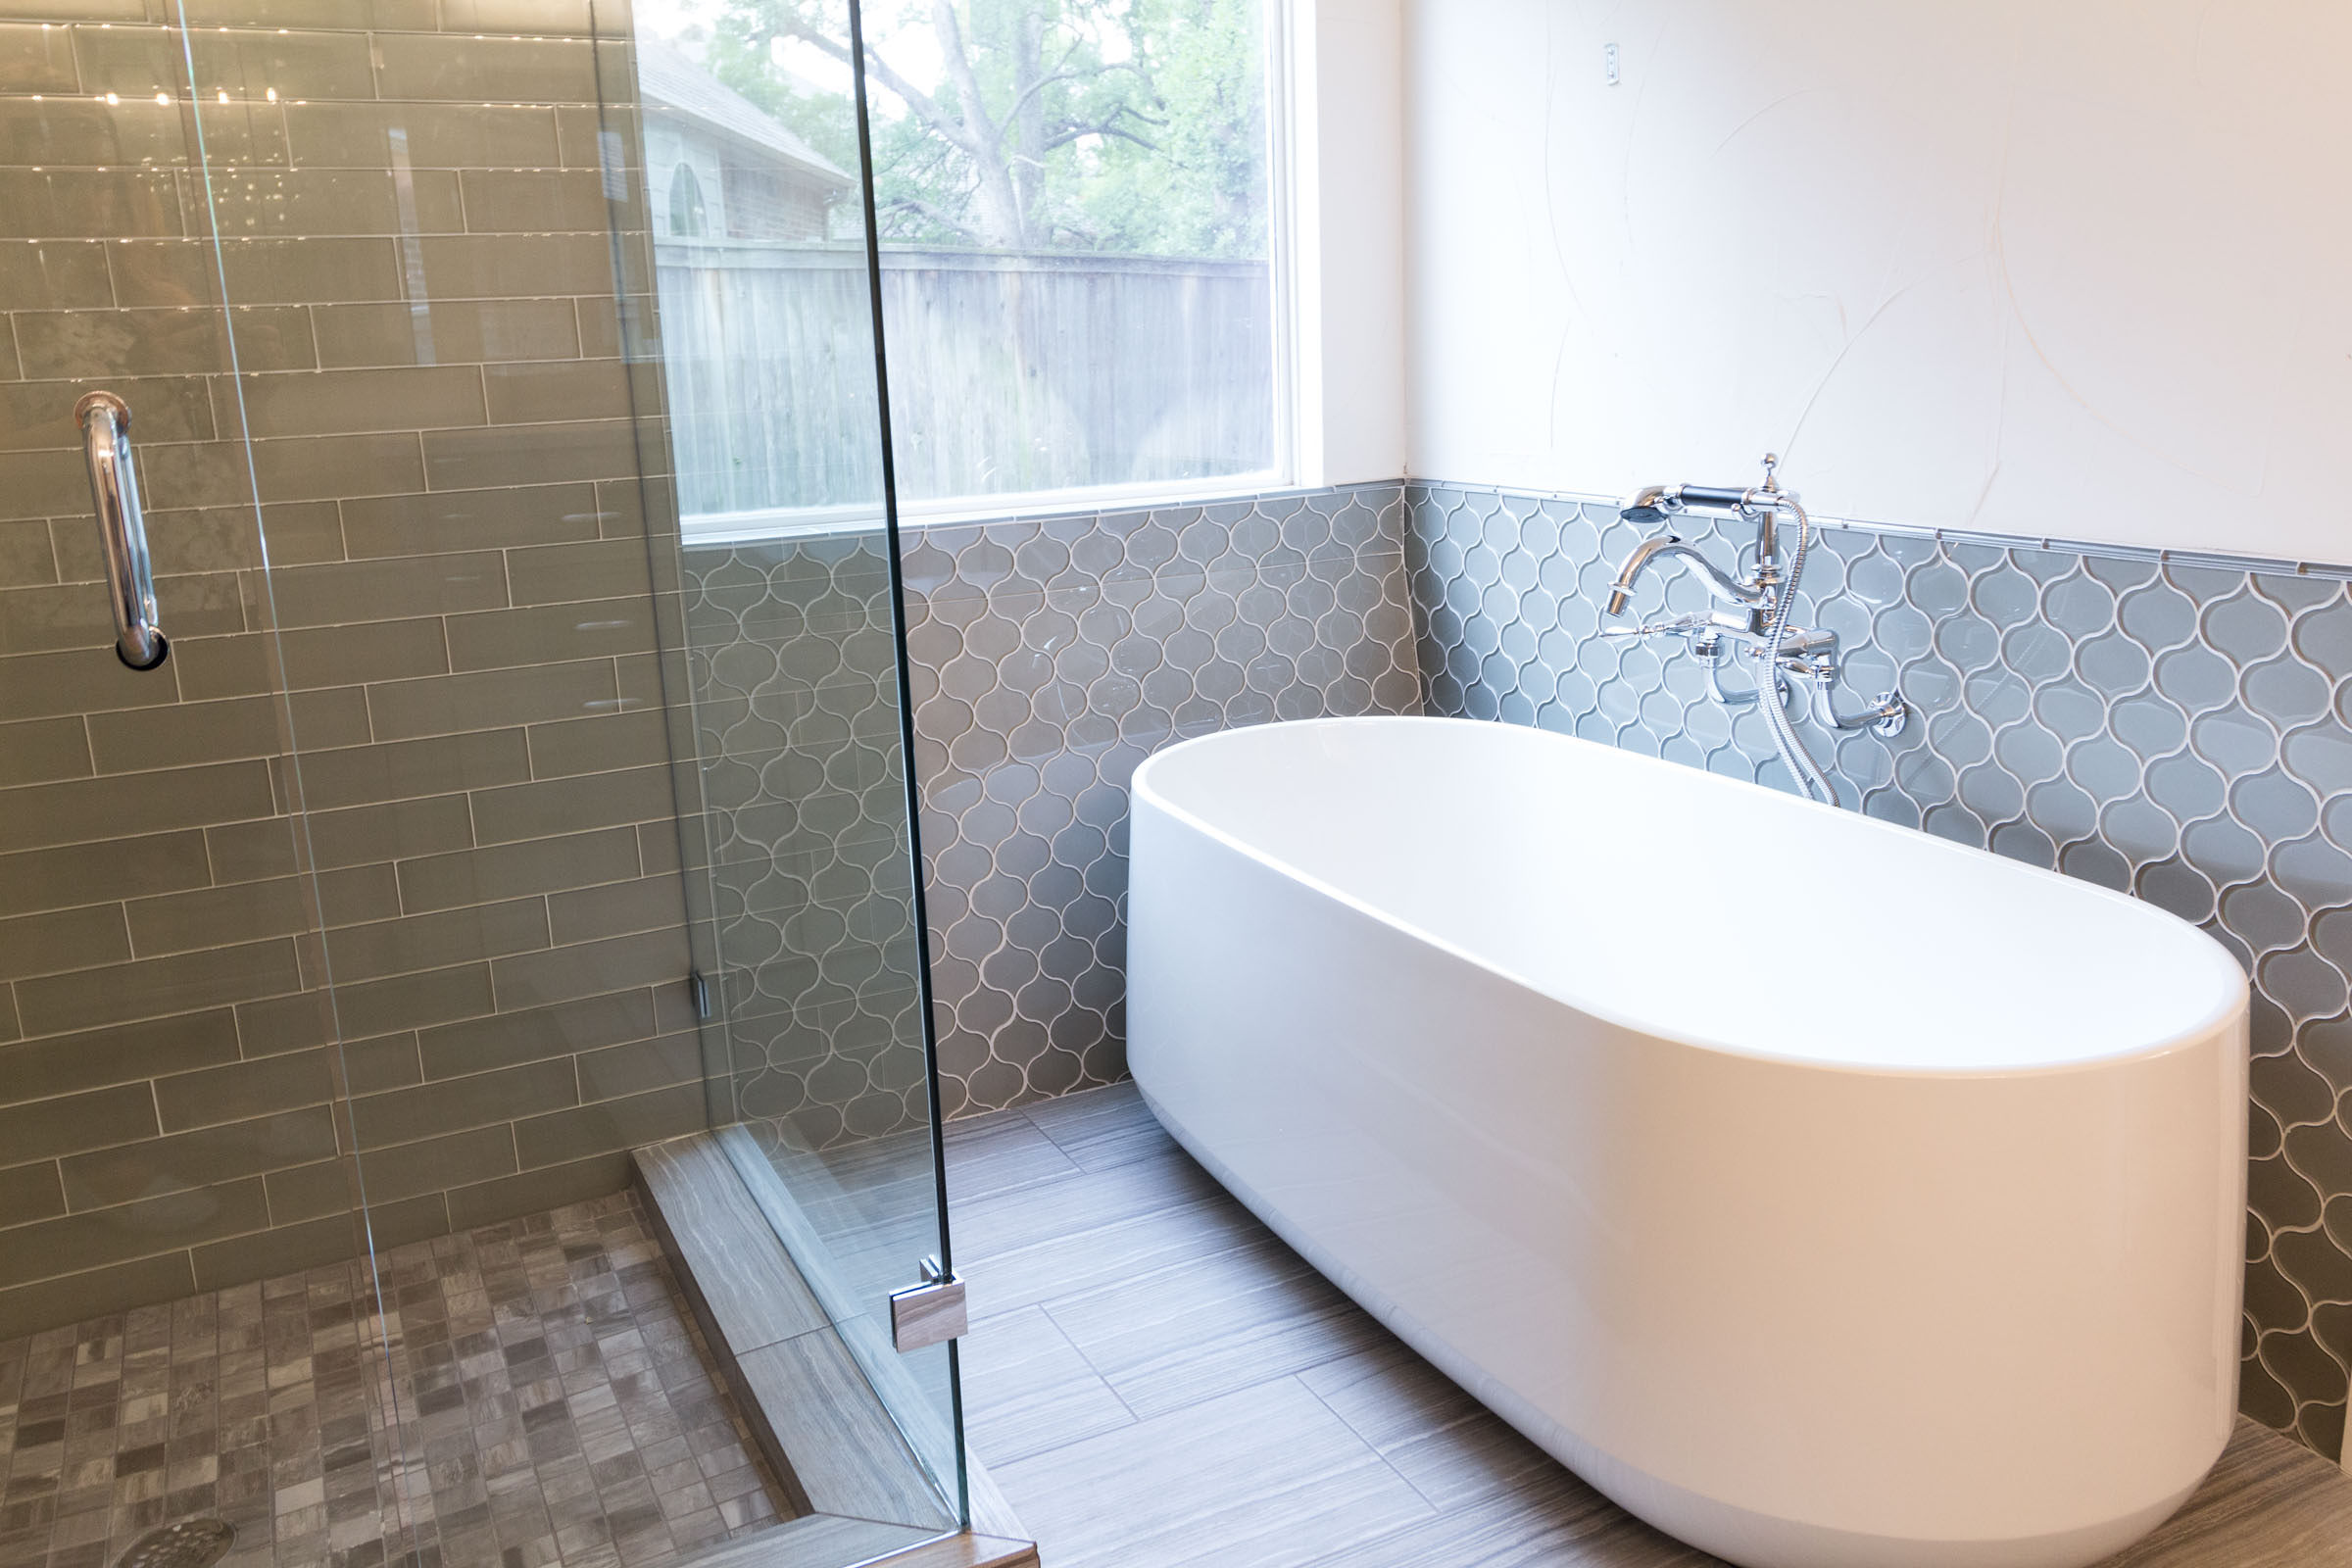 Bathroom Remodel bathtub detail shot white and grey